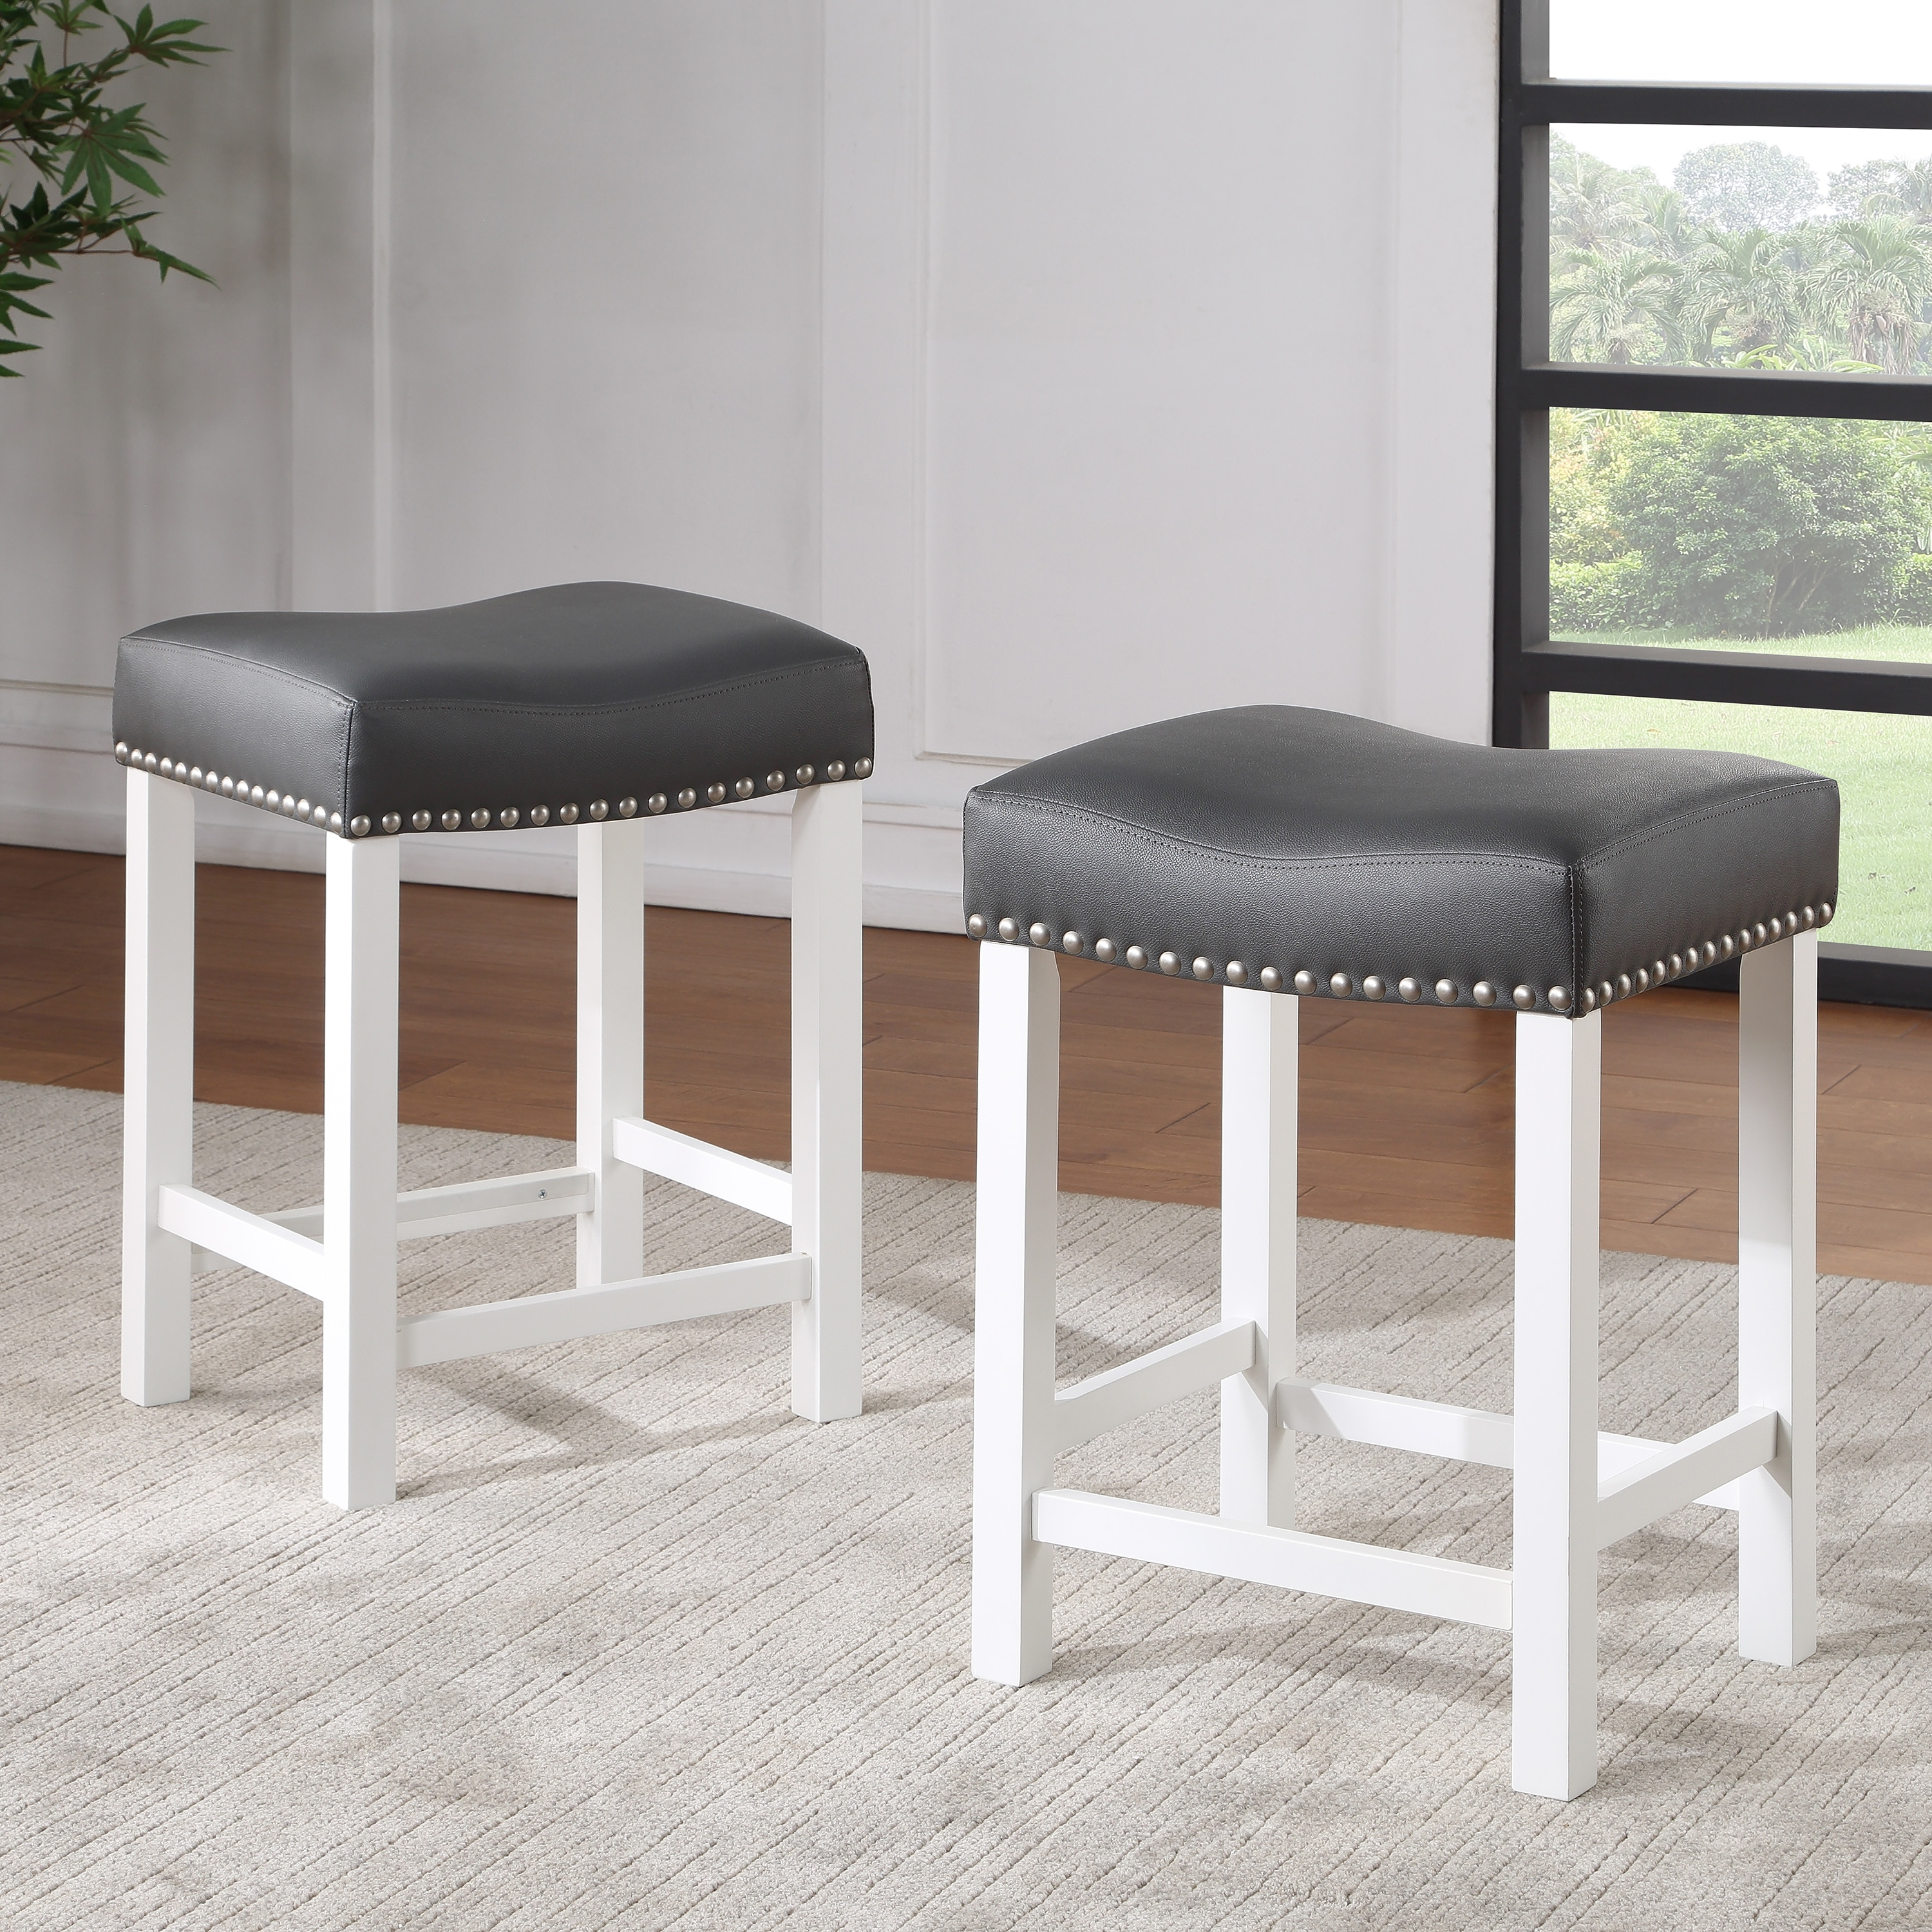 The Gray Barn Zoie Counter Stool Set Of 2 See Product Description On Sale Overstock 32511844